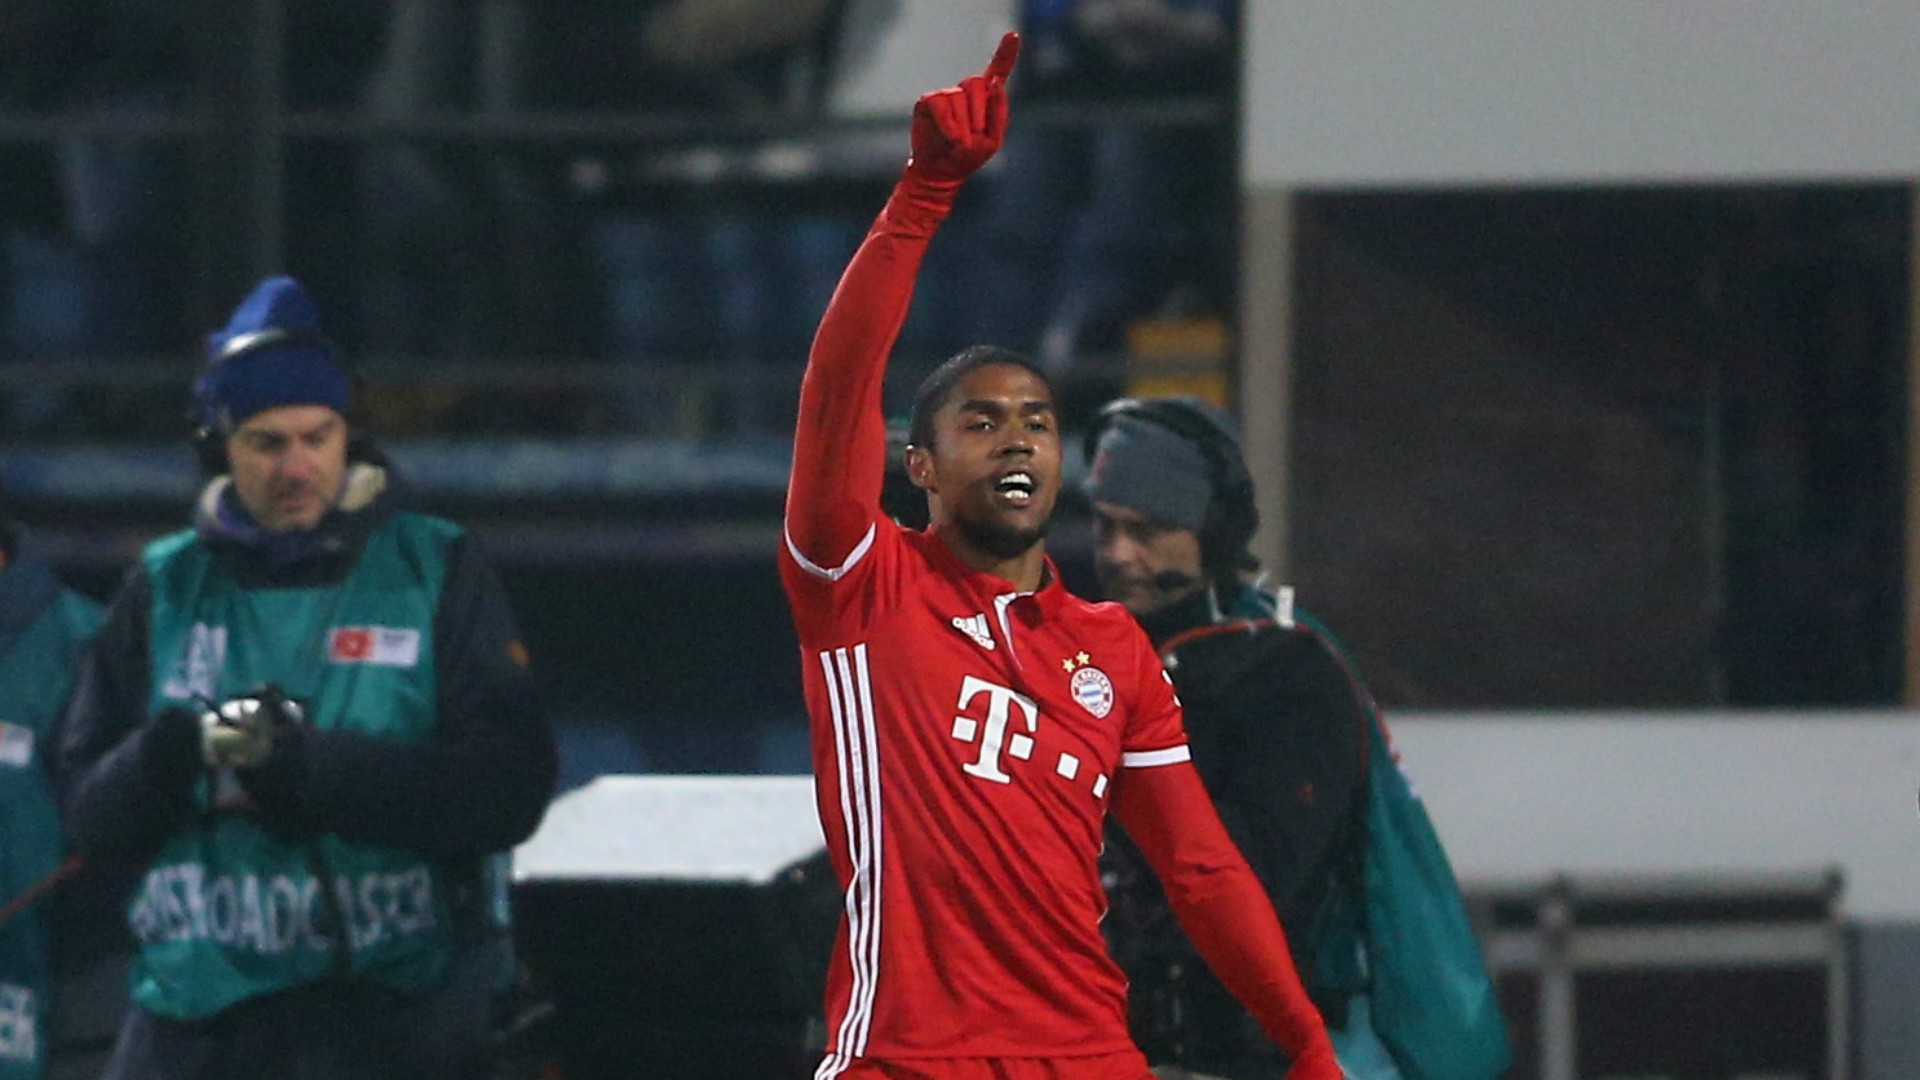 Douglas Costa eager to work with Higuain with Juventus